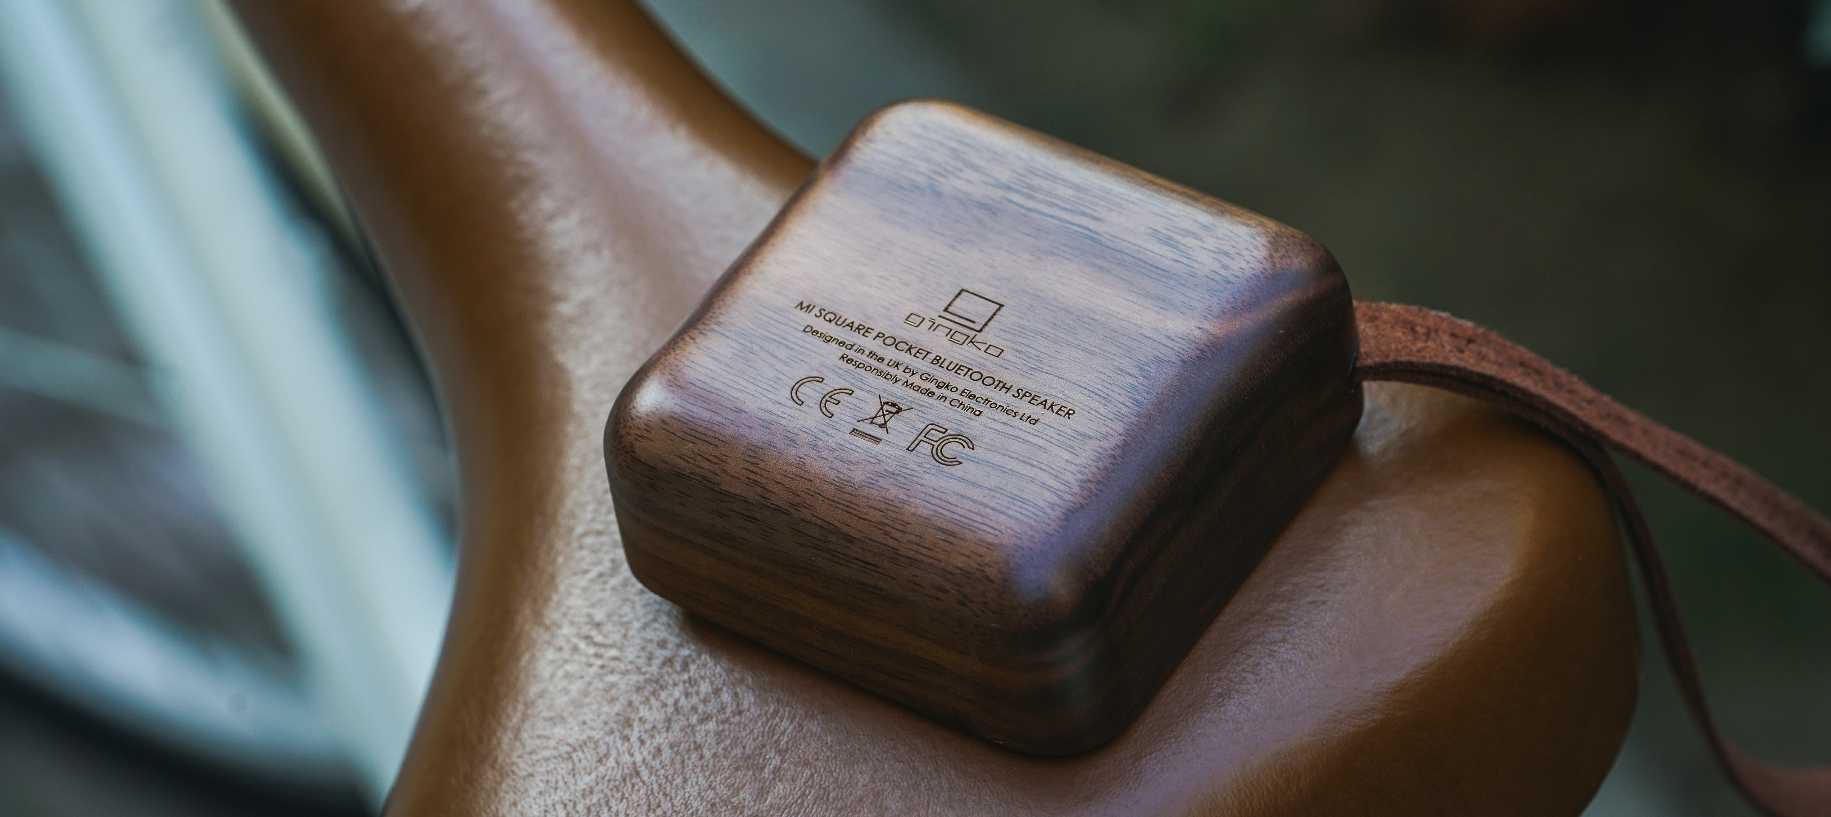 MI SQUARE Pocket Speaker Walnut Design Essentials Gingko